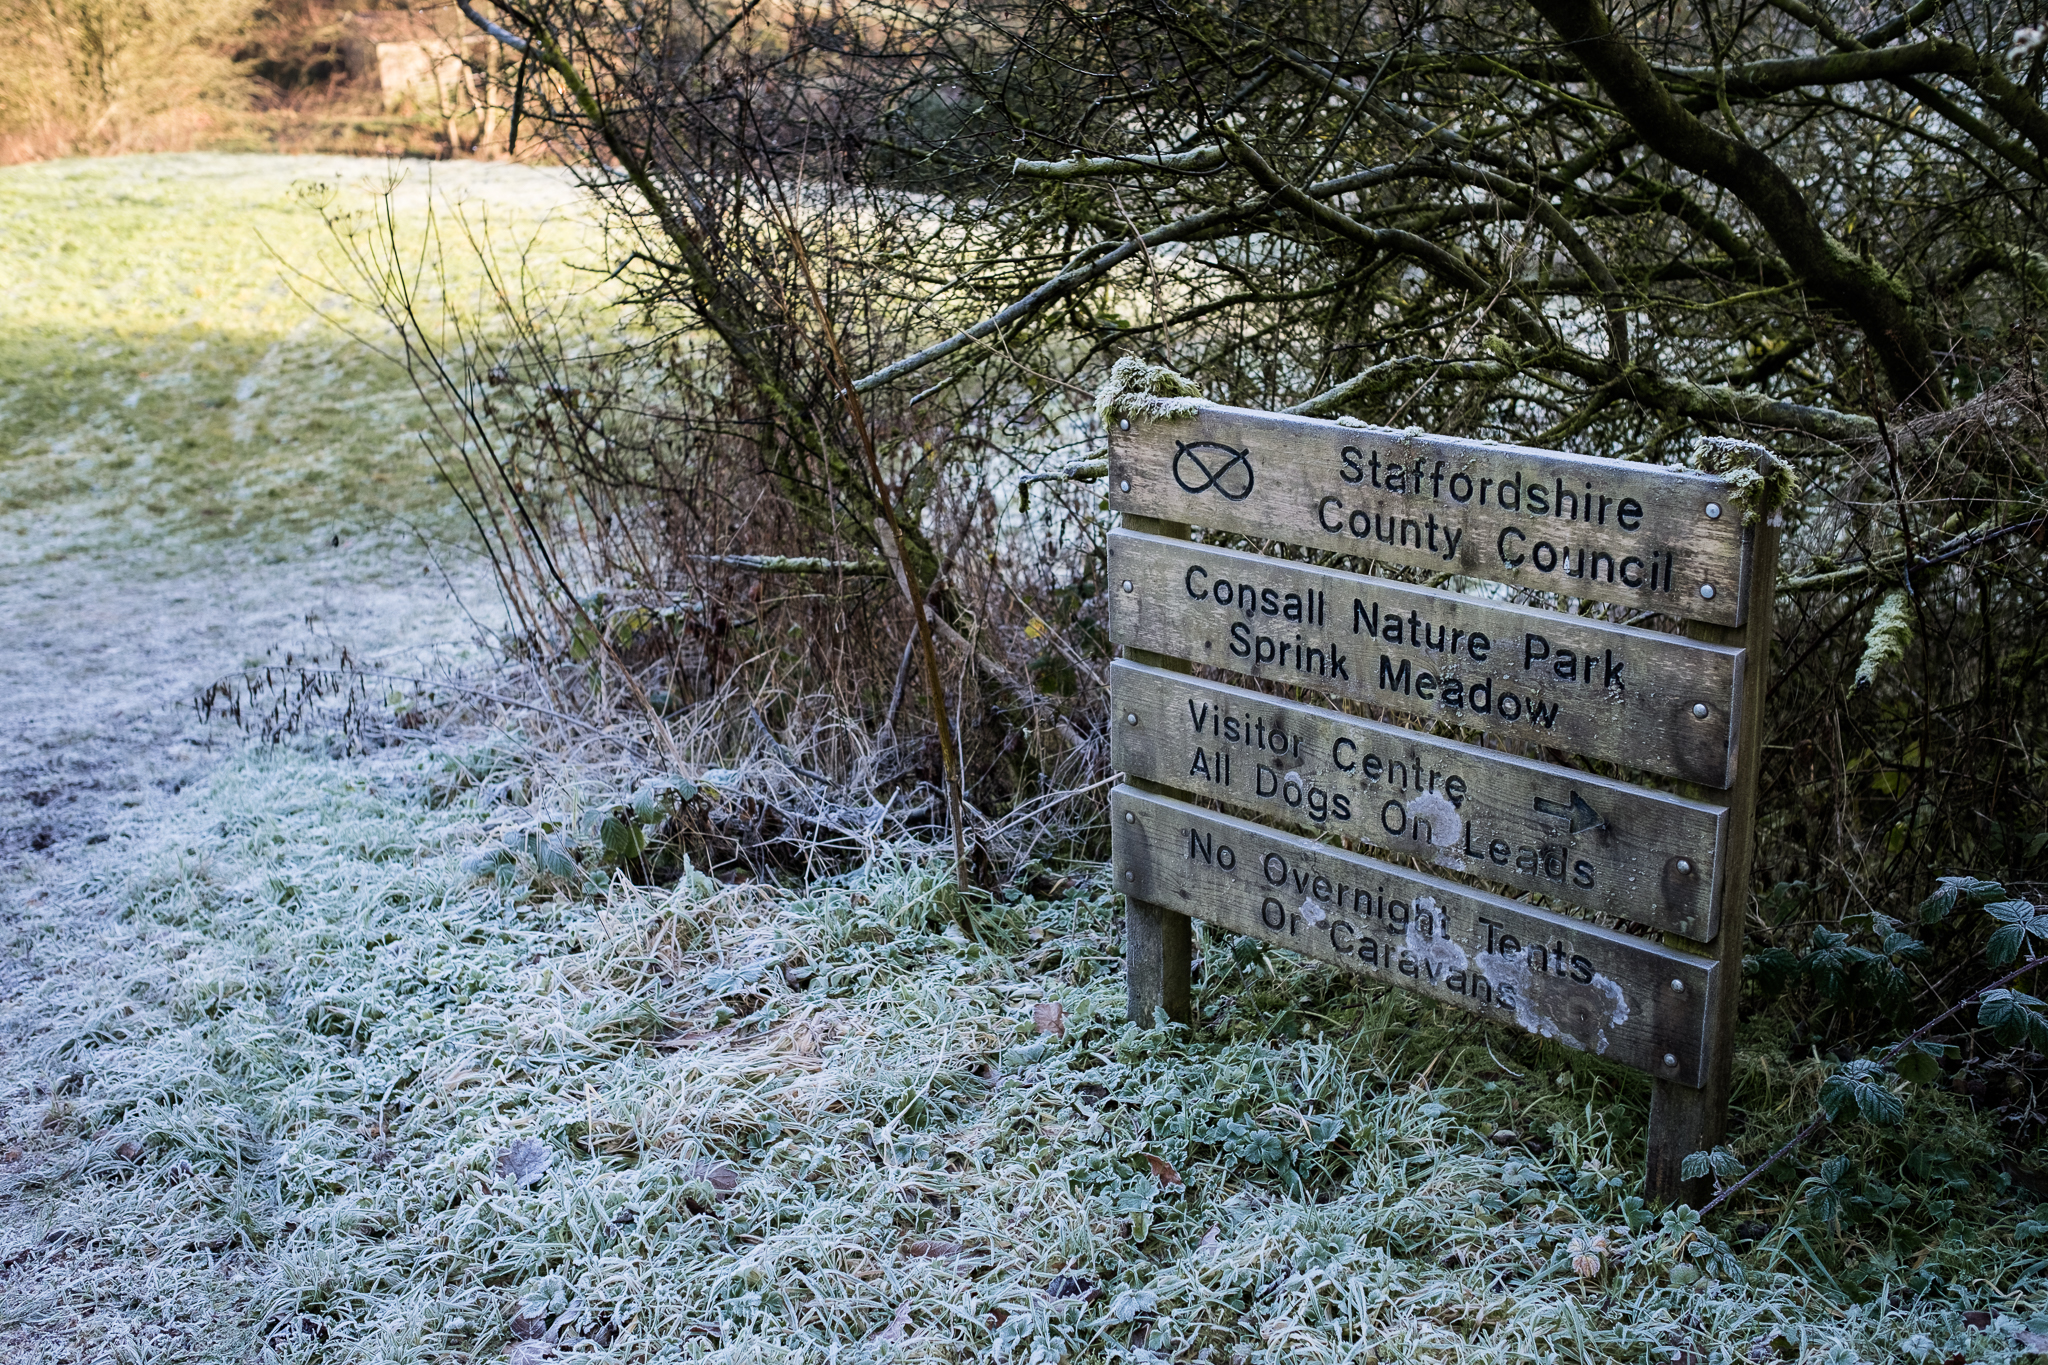 Staffordshire Photowalk Consall Forge Consall Nature Reserve The Black Lion Winter Cold Frosty-28.jpg